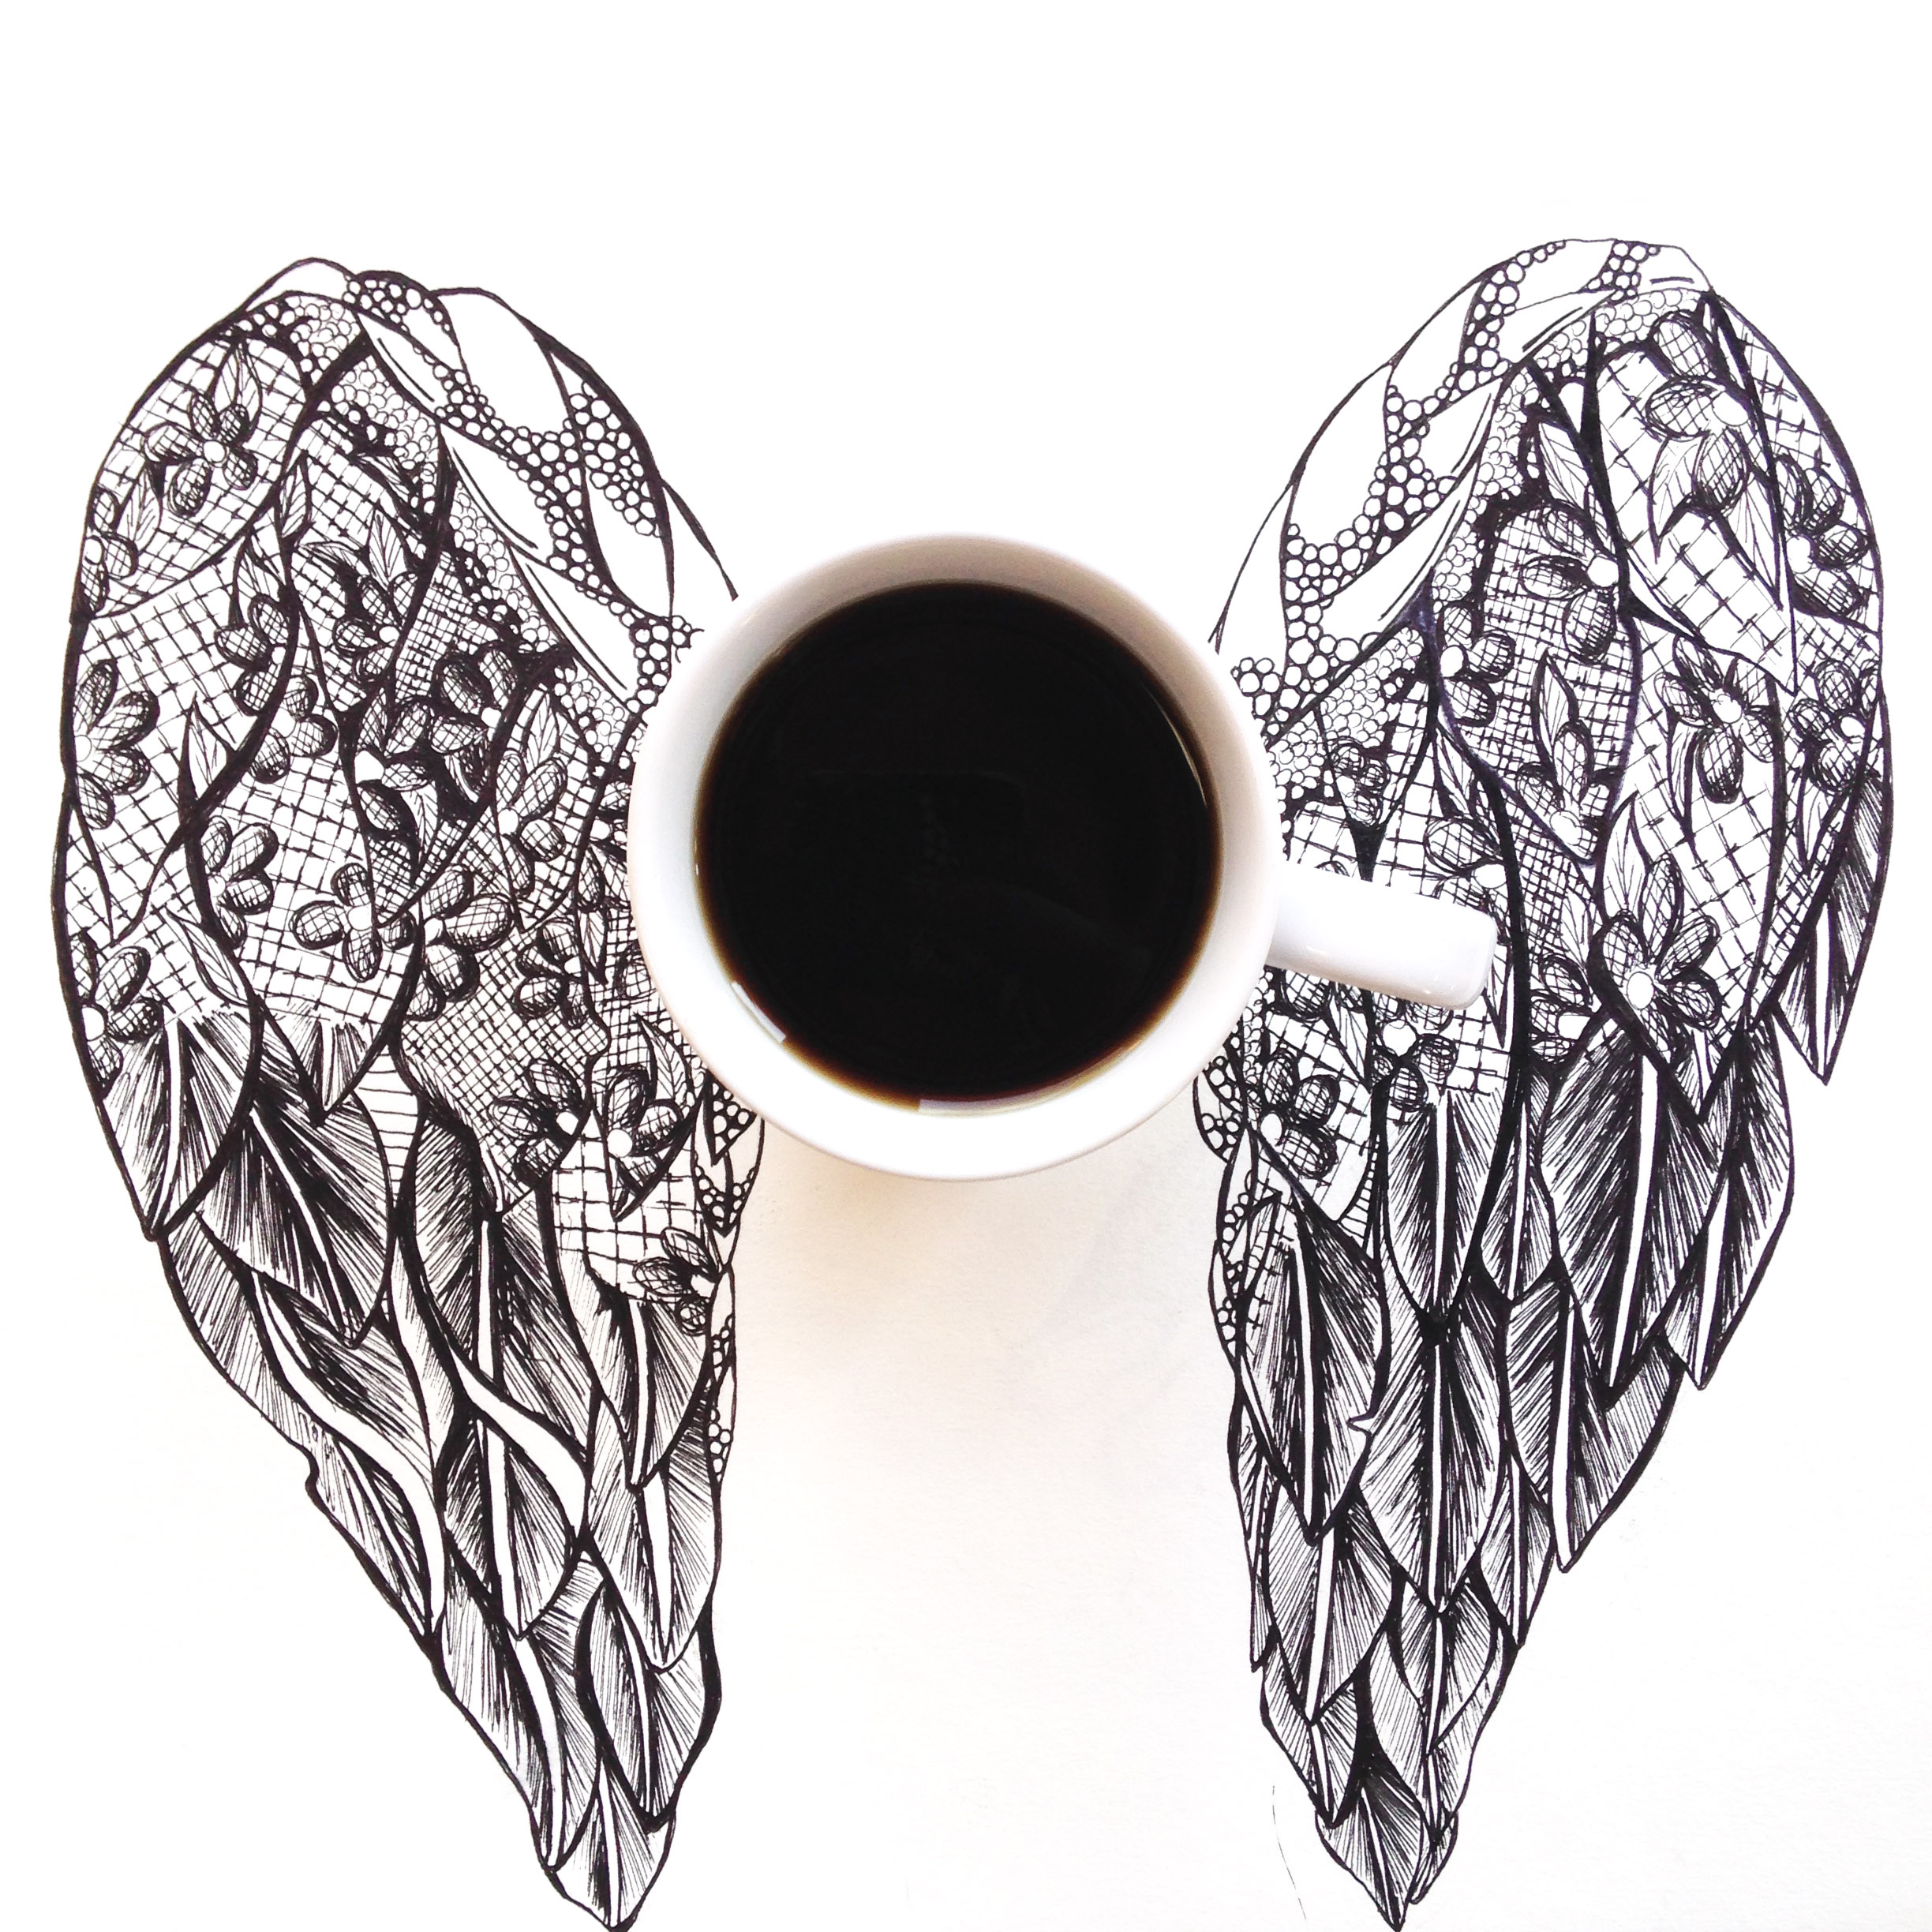 Coffee wings by Kelsey Montague